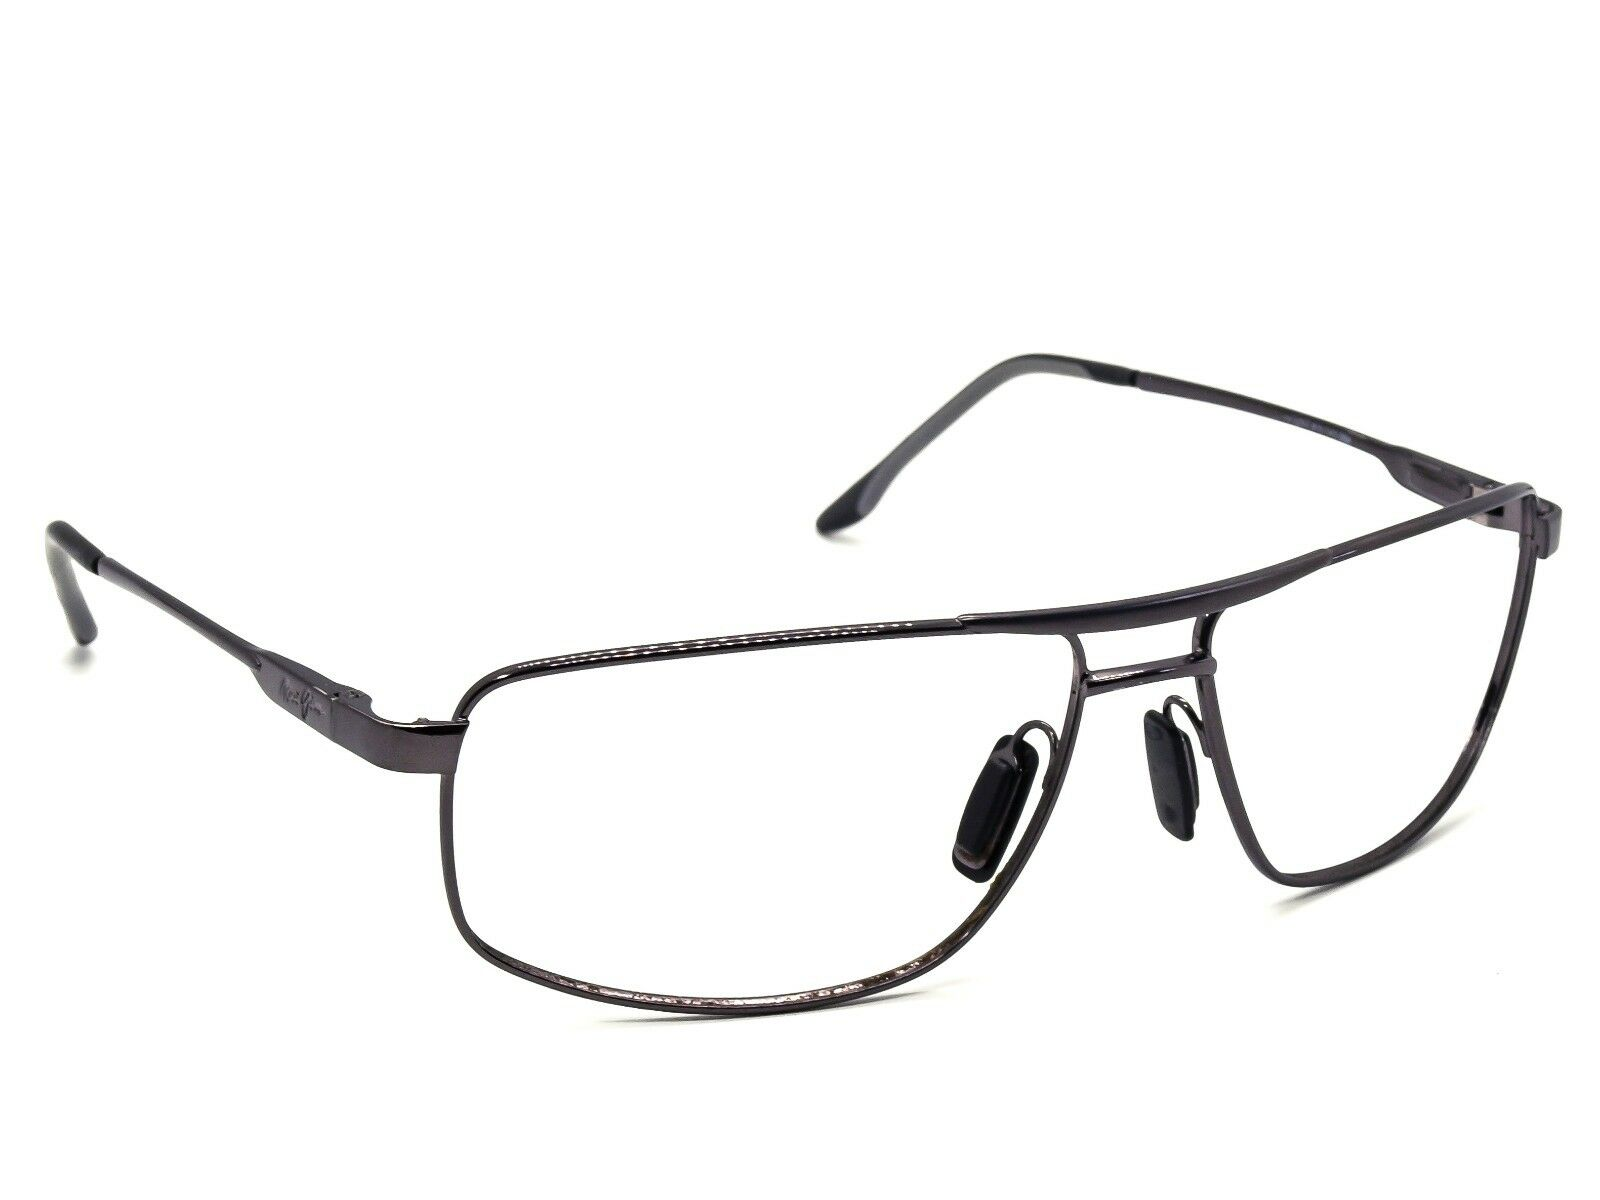 Sunglasses Frame Only